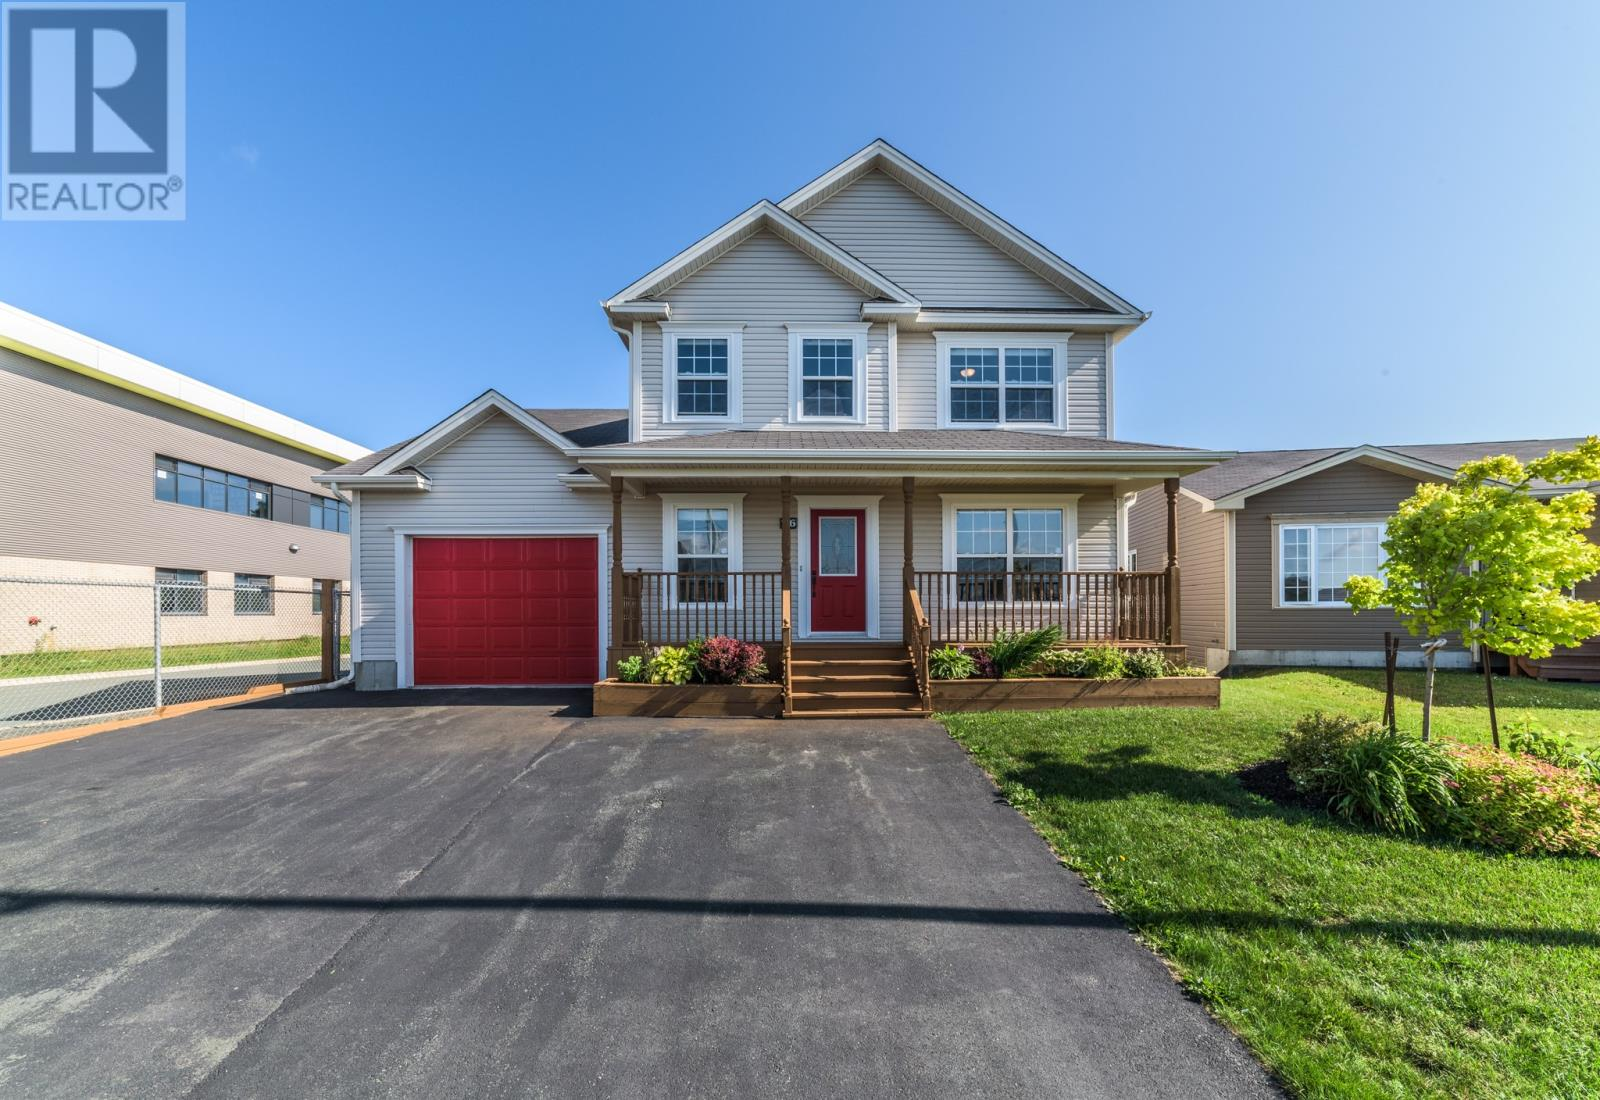 Removed: 26 Canso Place, St Johns, NL - Removed on 2019-11-04 21:12:20